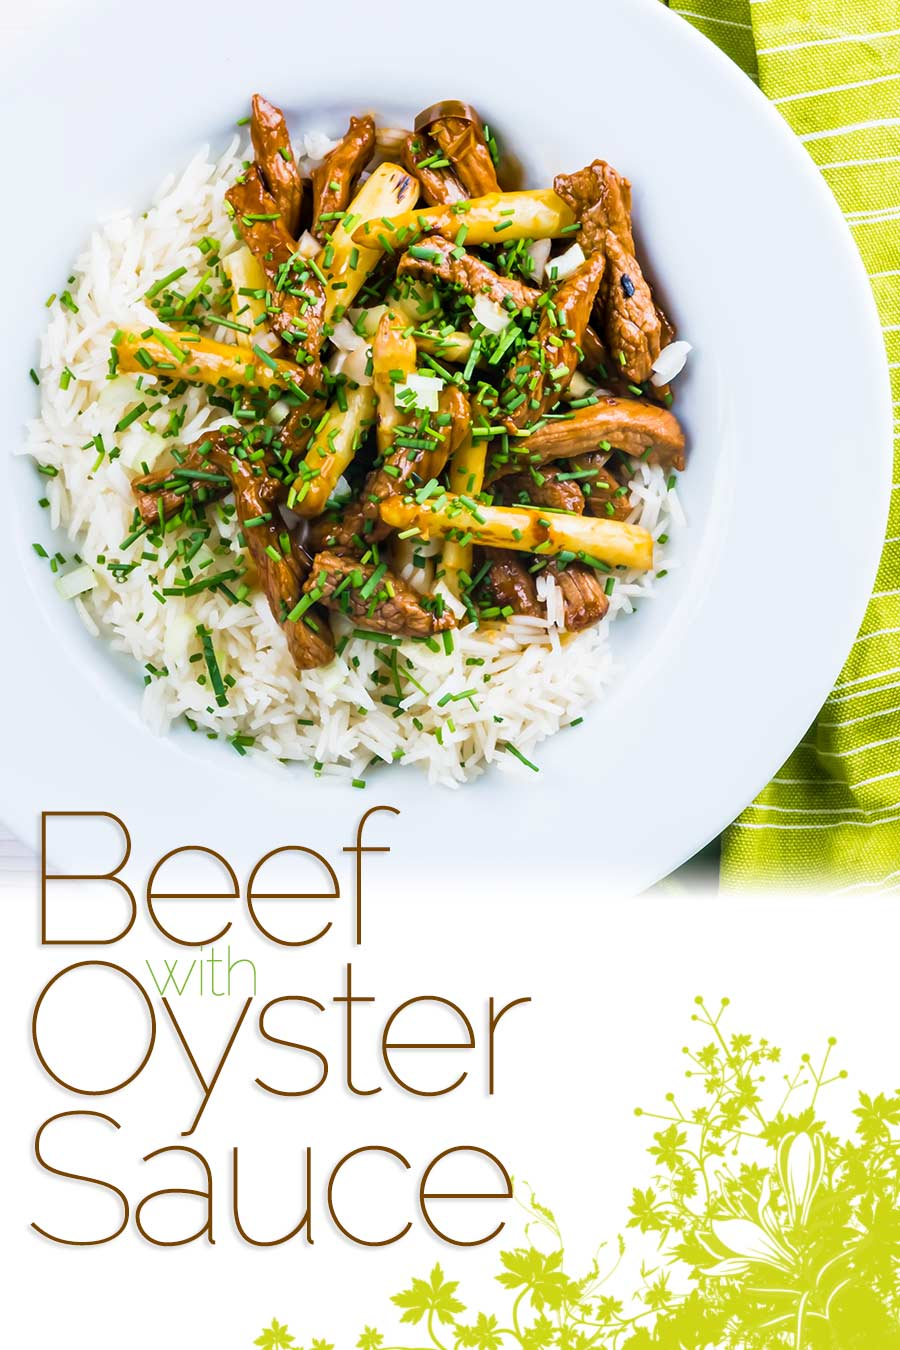 Beef with oyster sauce is an ever-green takeaway favourite, my fakeaway version is ready in just 20 minutes and features wonderful white asparagus! #beef #stirfry #asparagus #quickdinners #fastrecipes #beefrecipes #recipeideas #recipeoftheday #recipes